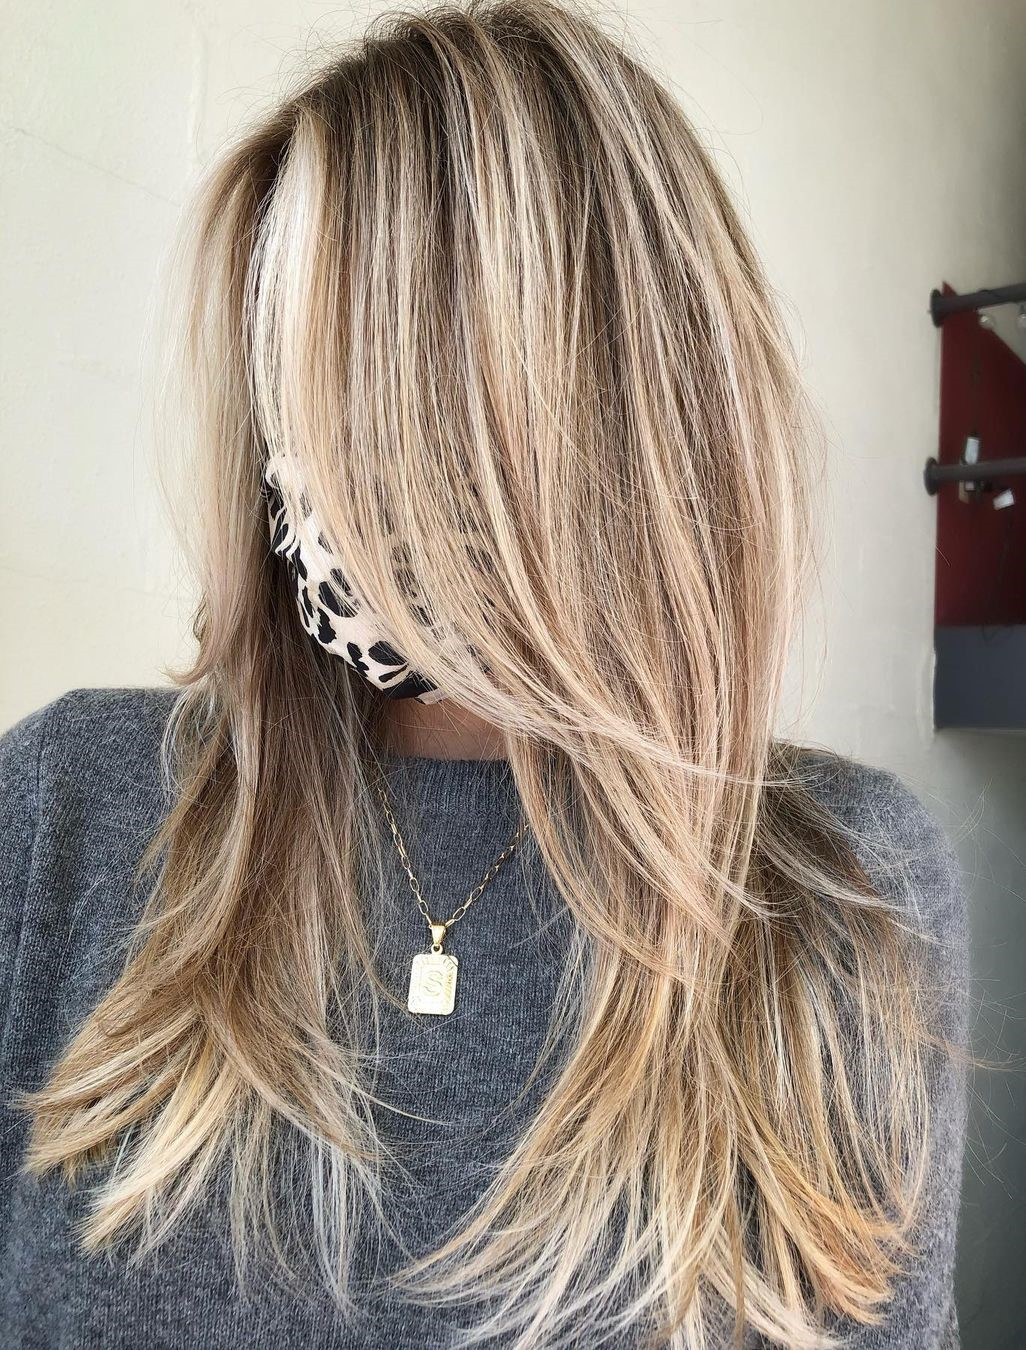 Long Hairstyle with Long Bangs